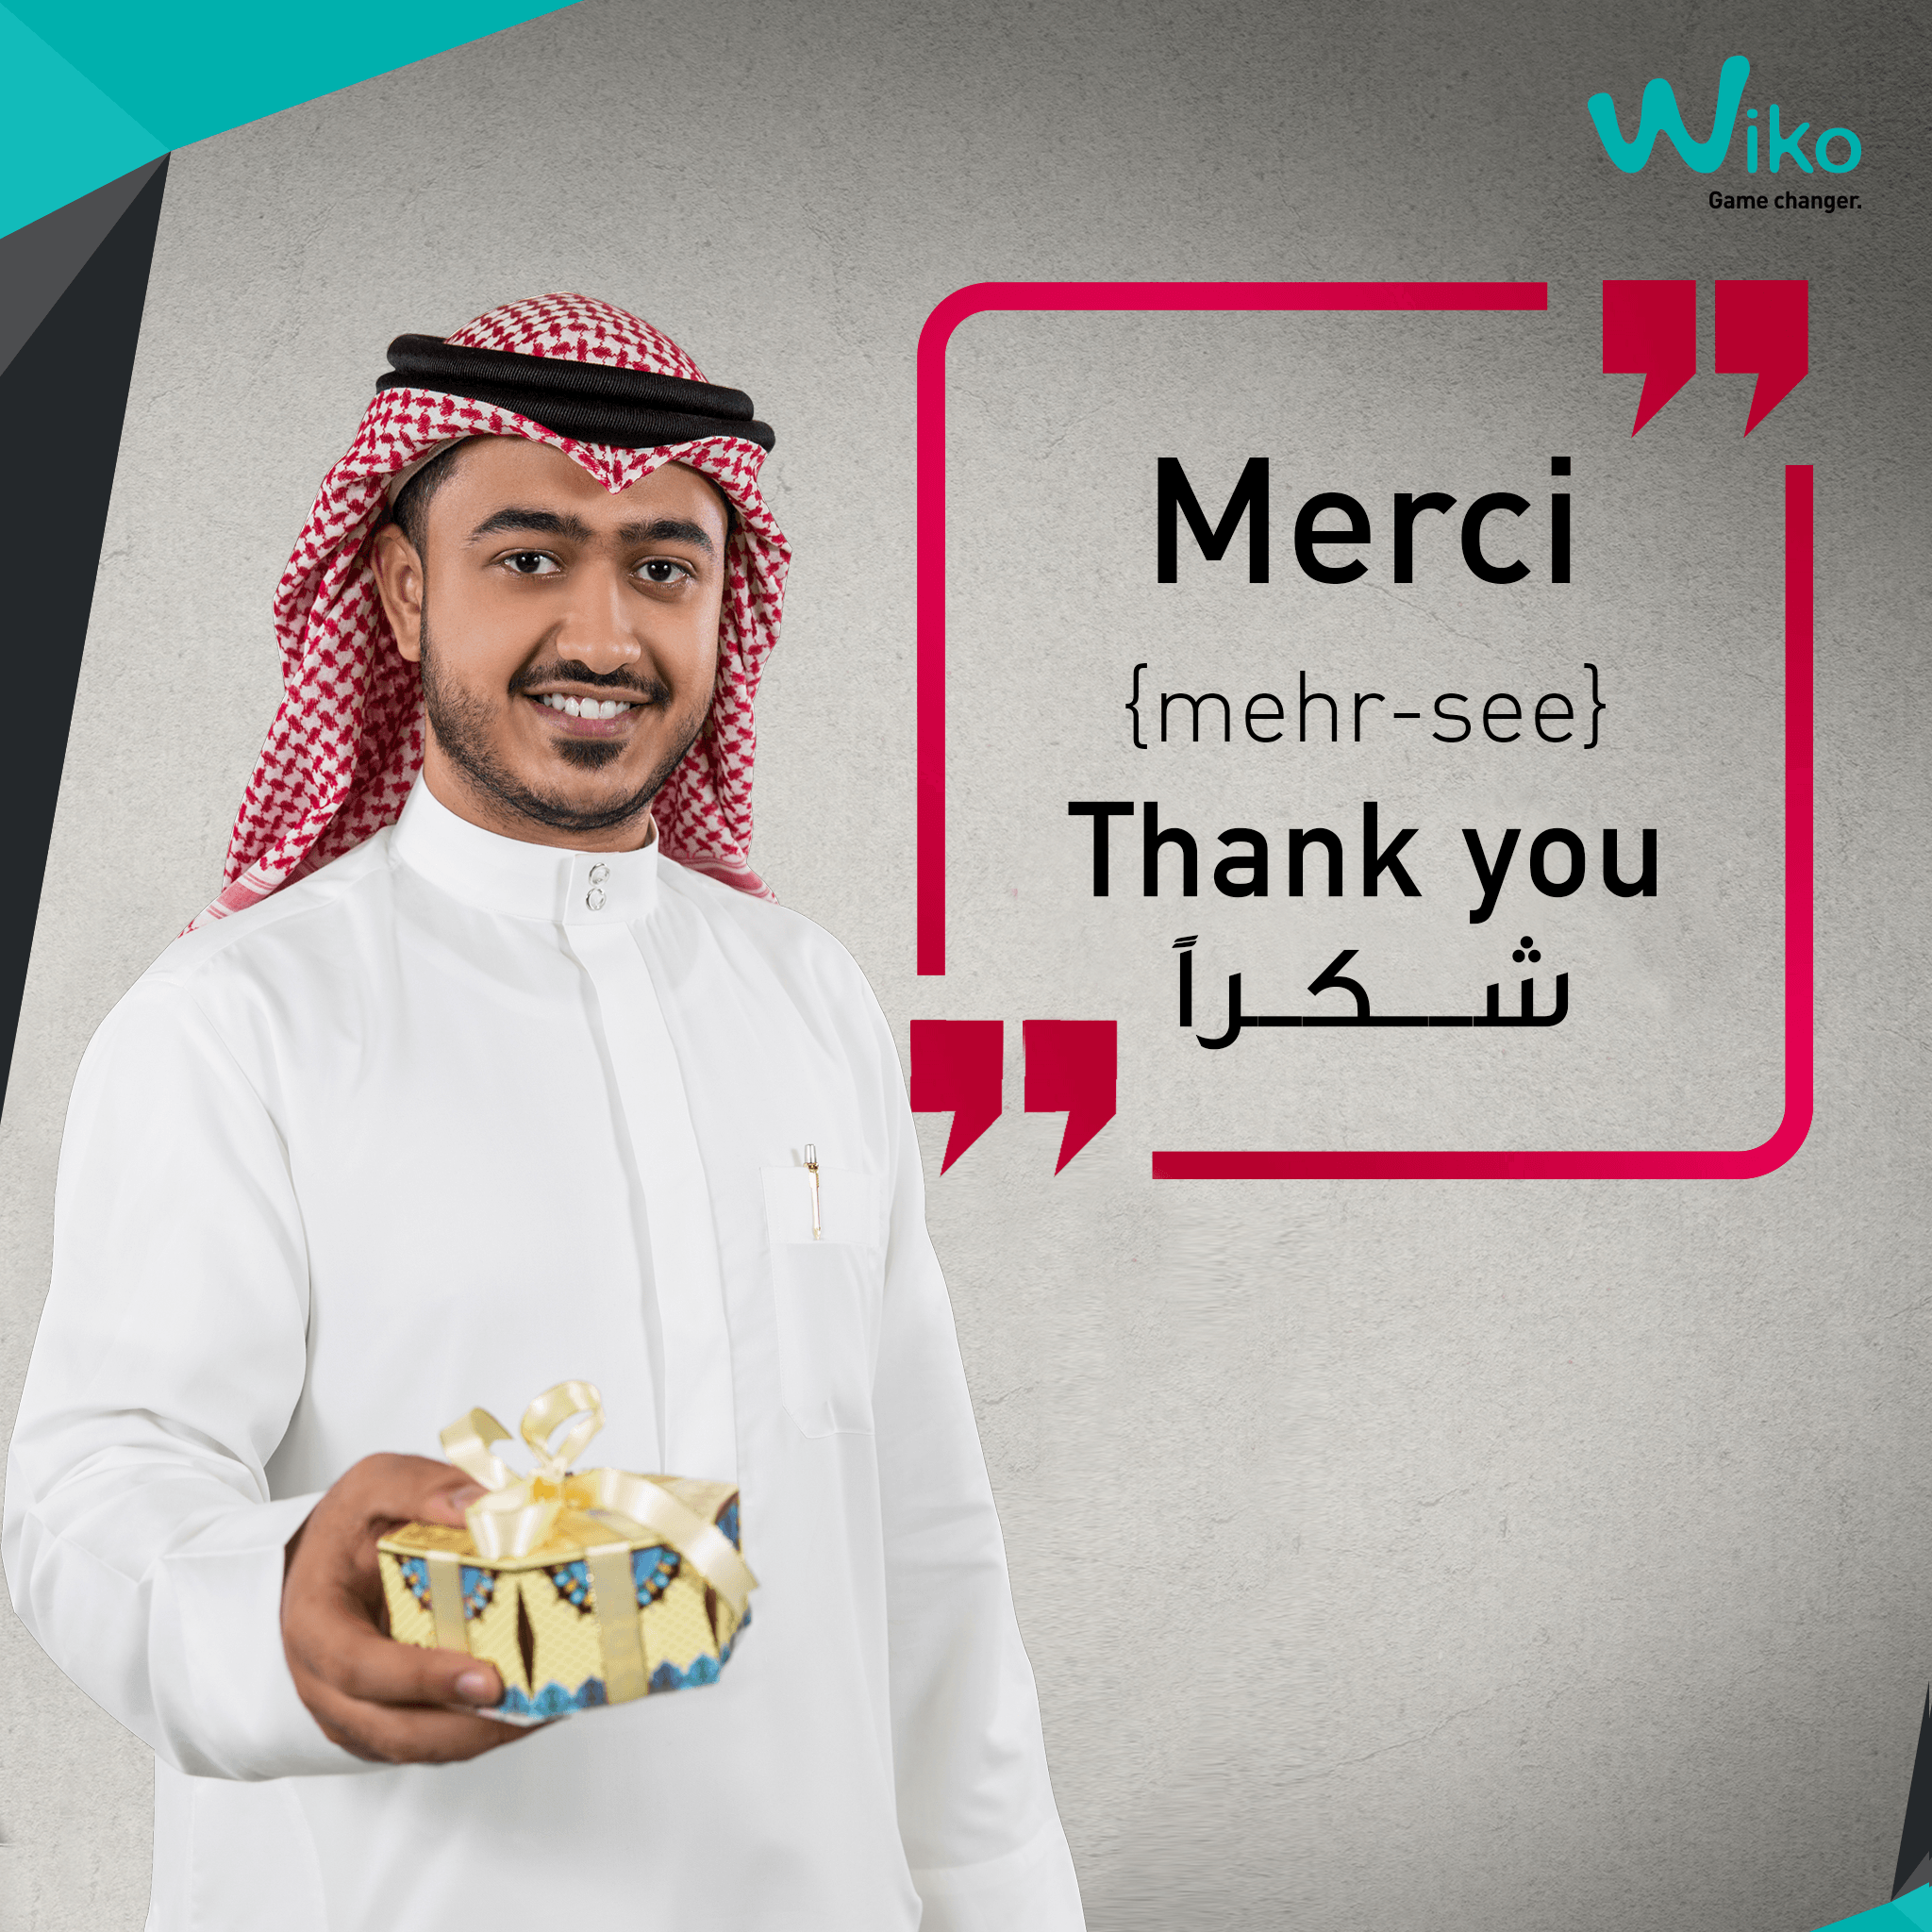 It S Tuesday And It S Time For Our French Lesson How Do You Say Thank You In French Wiko Wikoksa France اليوم الثلاثاء وصار وقت درسنا Game Changer